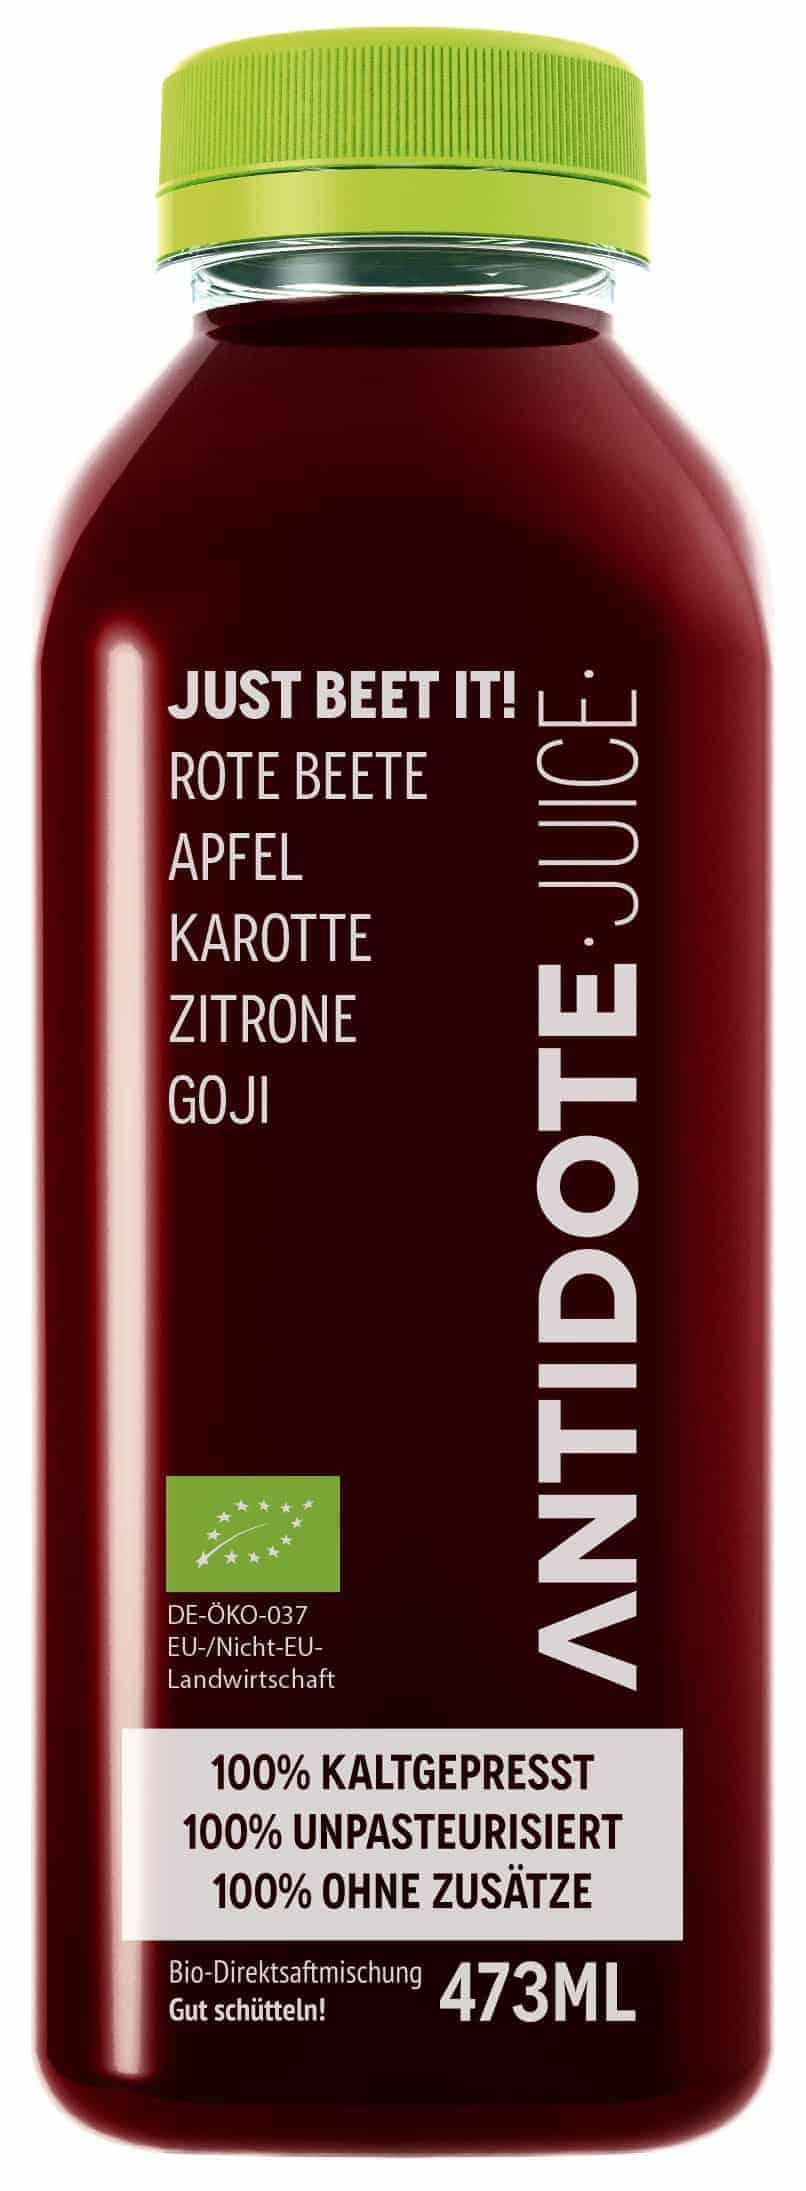 Just beet it! - Antidote Juice